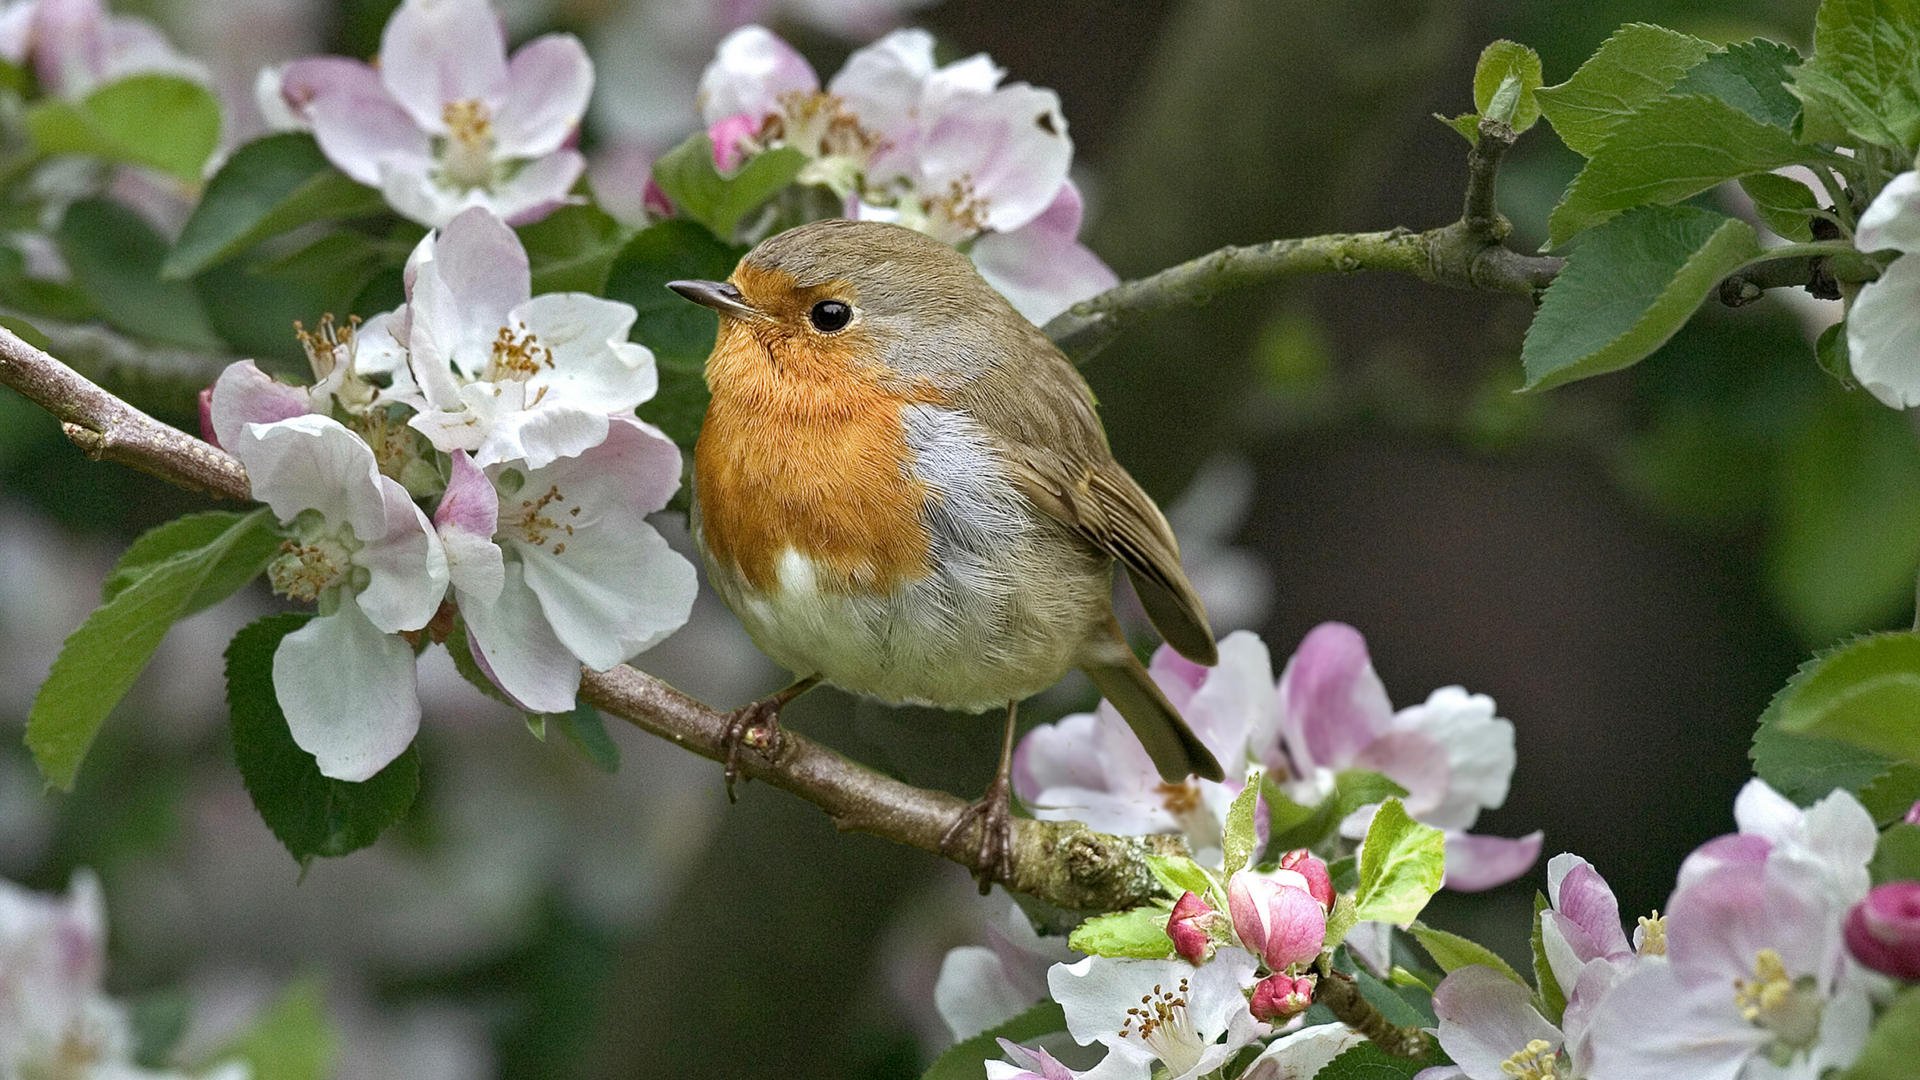 Birds And Flowers wallpaper   434052 1920x1080